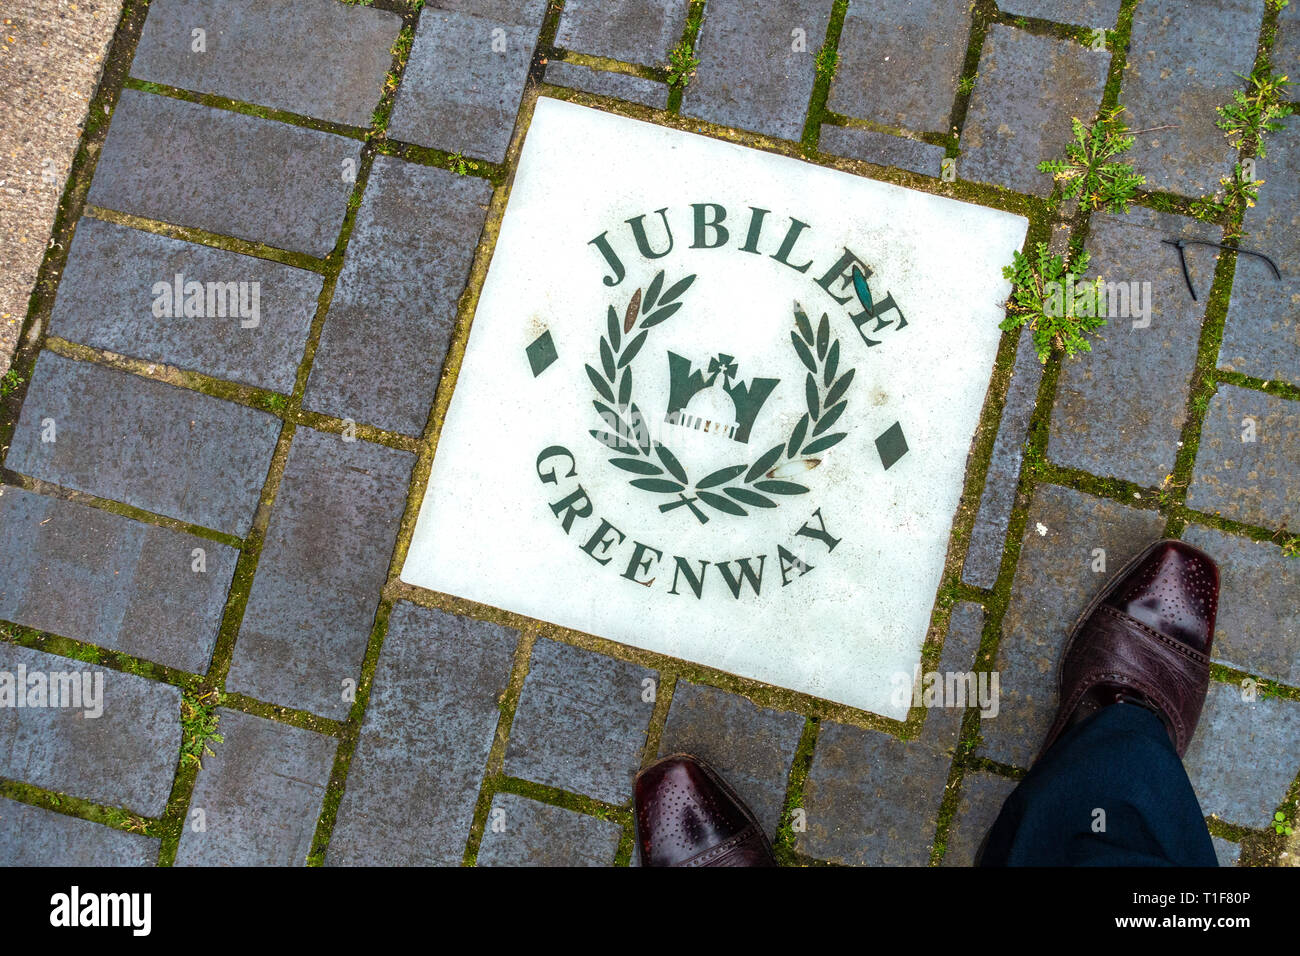 The Jubilee Greenway was created to celebrate the Diamond Jubilee, linking the West End of London with the East End - Stock Image